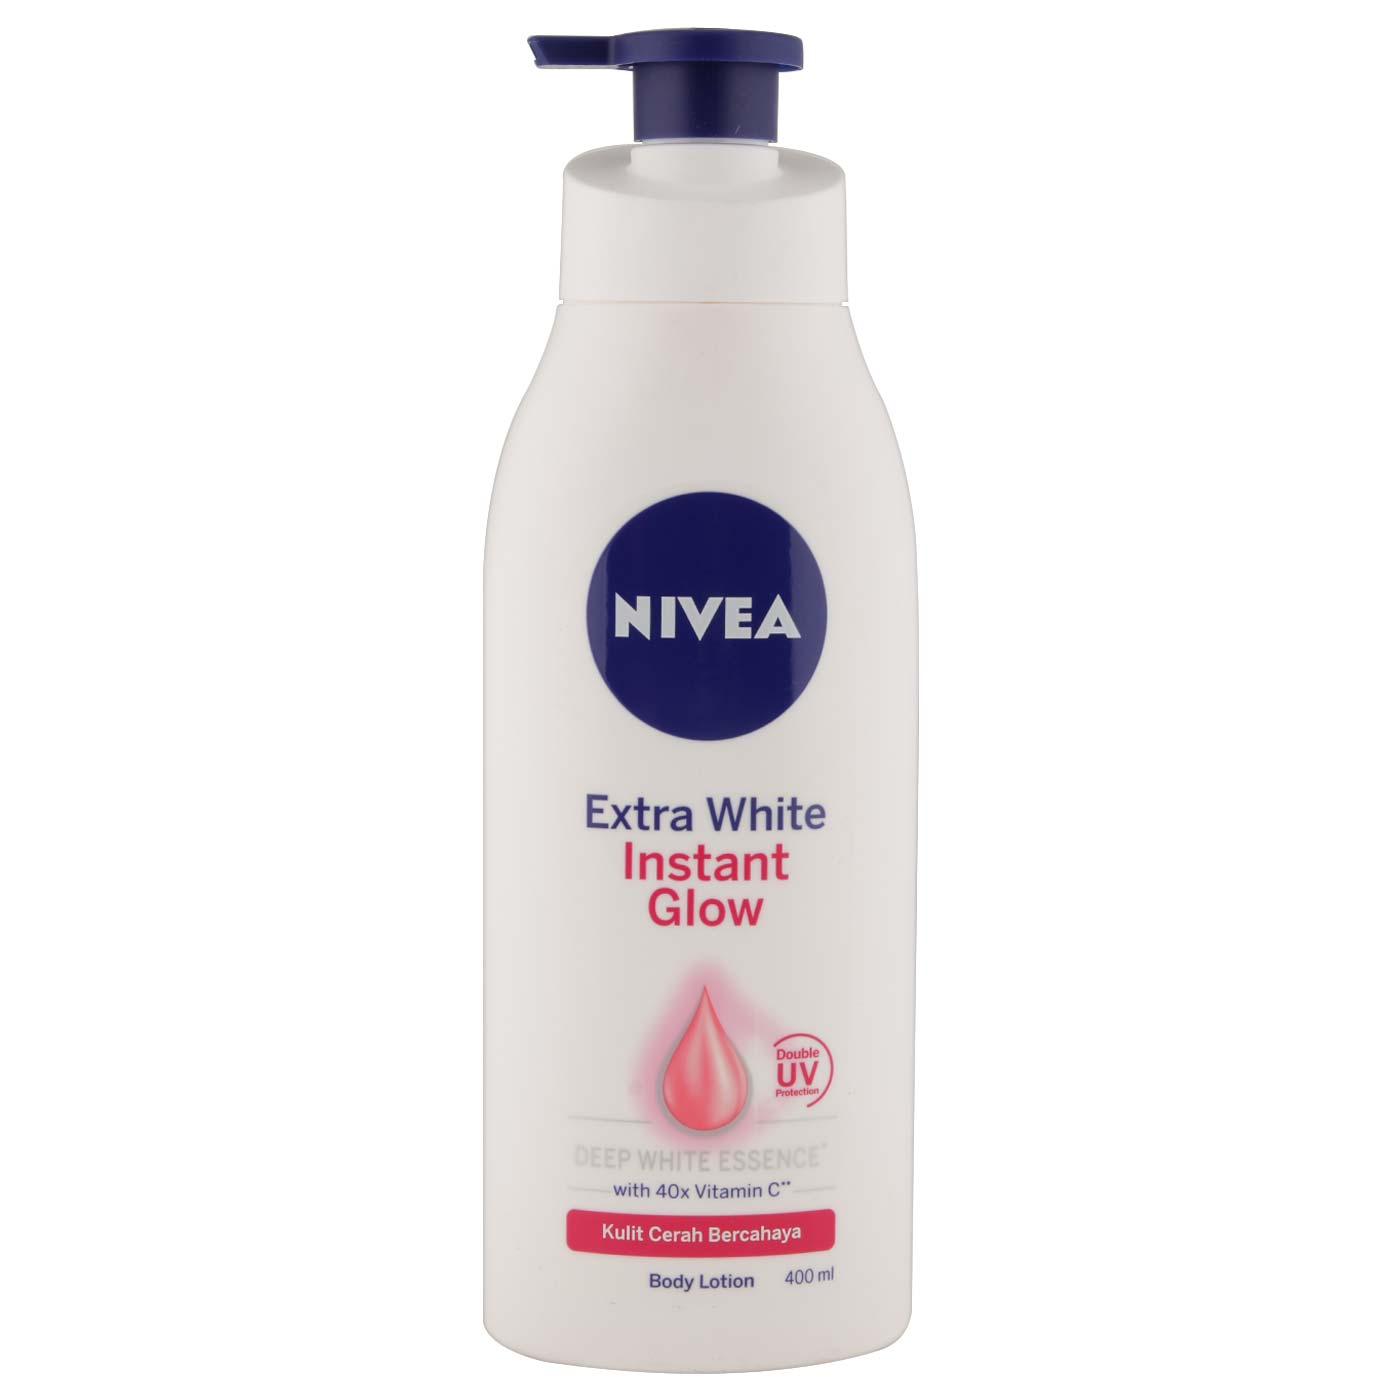 Nivea Body Lotion Instant White Firming SPF 15 - 400ml